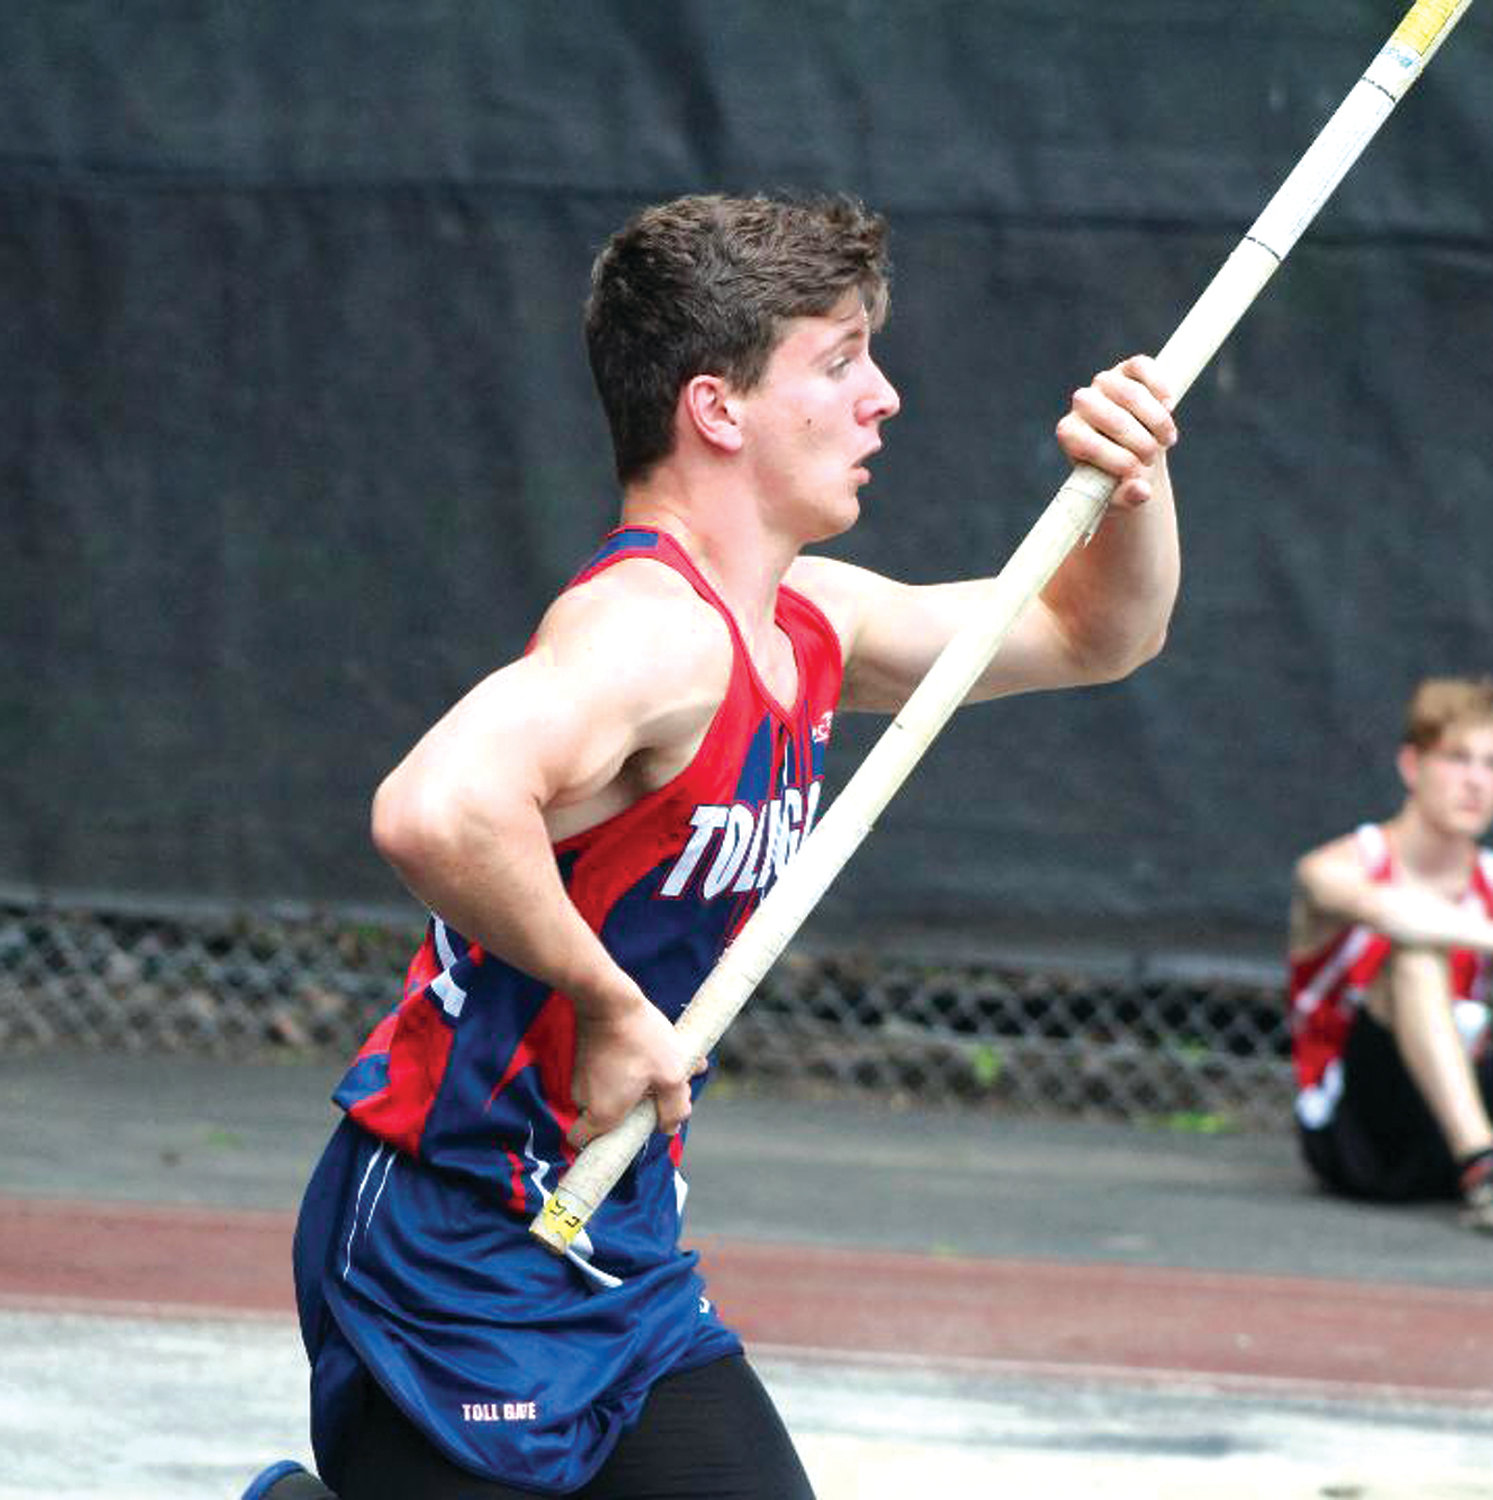 TAKING BRONZE: Toll Gate's Justin Perreault competes in pole vault.